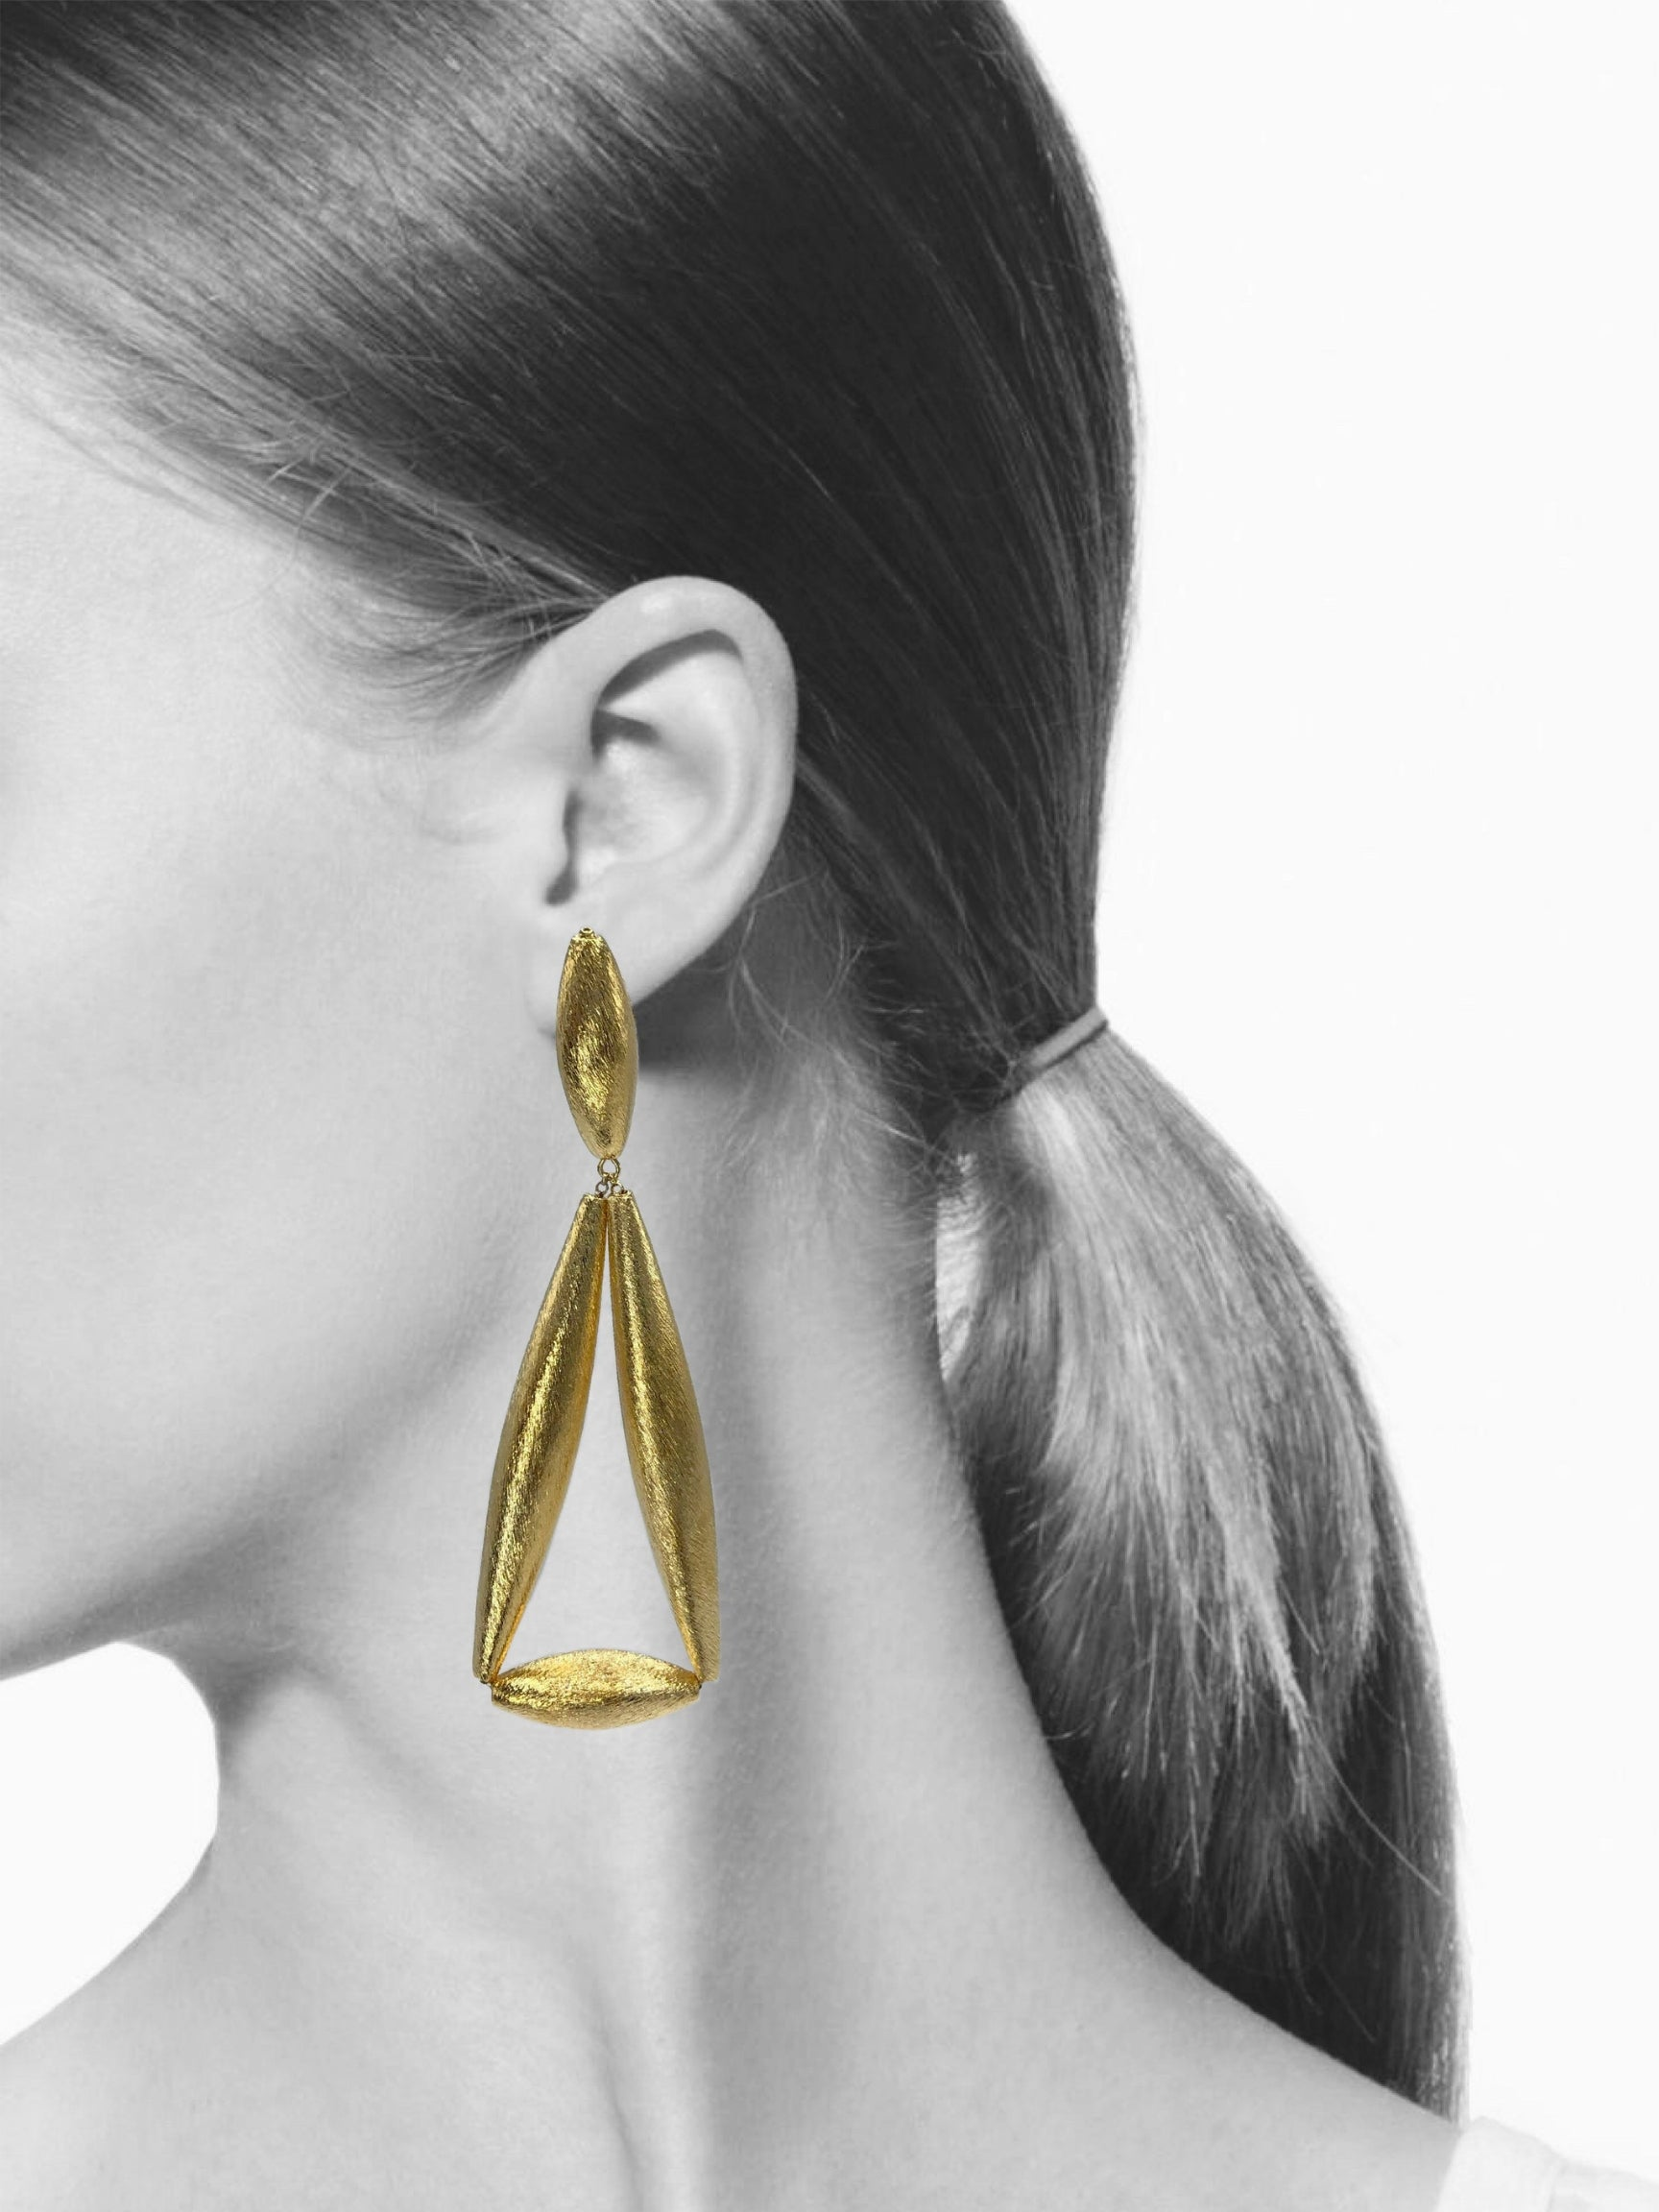 Zeppelin Ivy Gold Clipon Earrings-Earrings-JAREDJAMIN Jewelry Online-JARED JAMIN